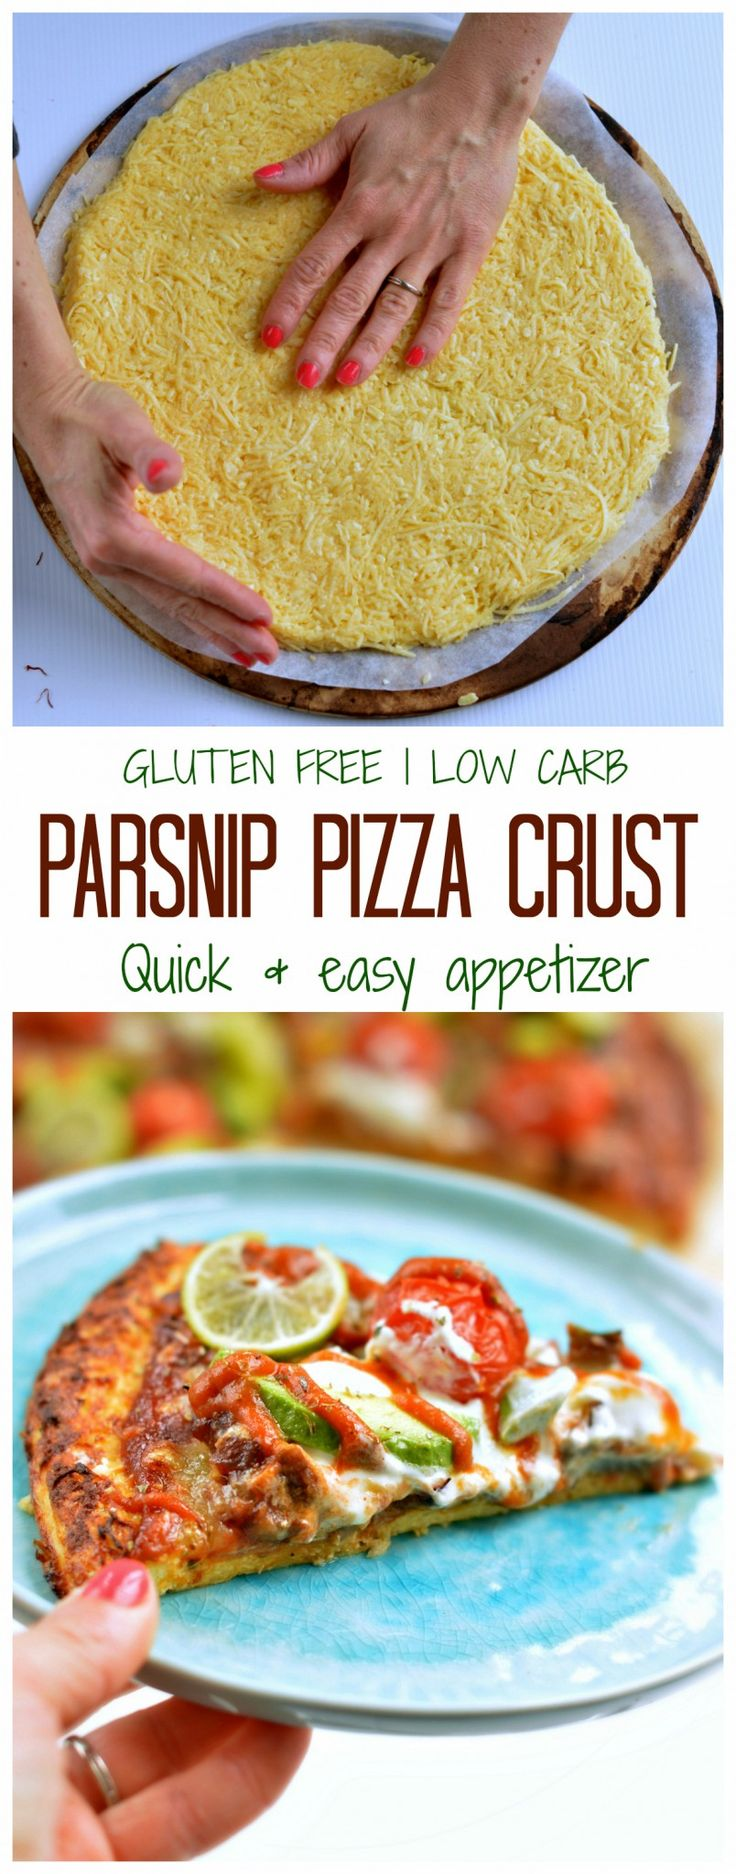 LOW CARB Parsnip Pizza Crust only 4 ingredients ready in 10 minutes. A great appetizer loaded with vegetables.